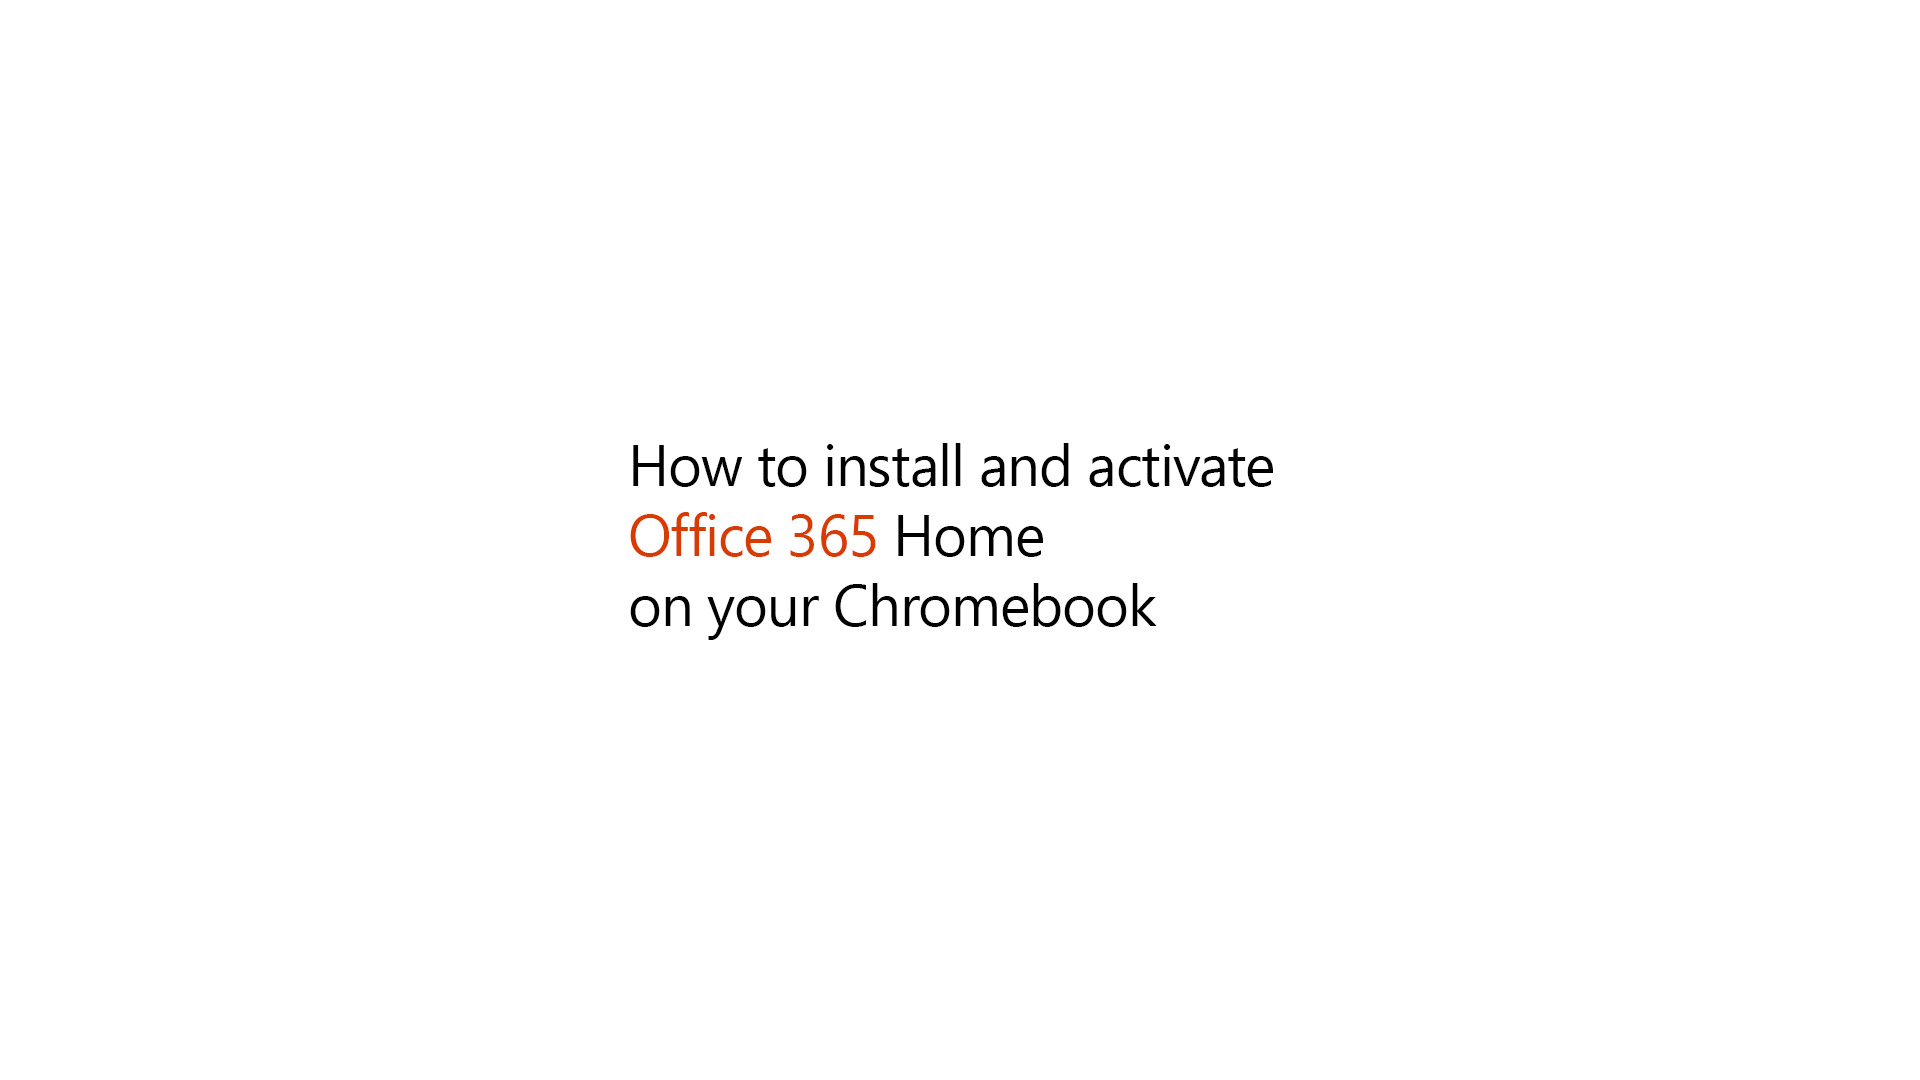 How to install and activate Office 365 Home on your